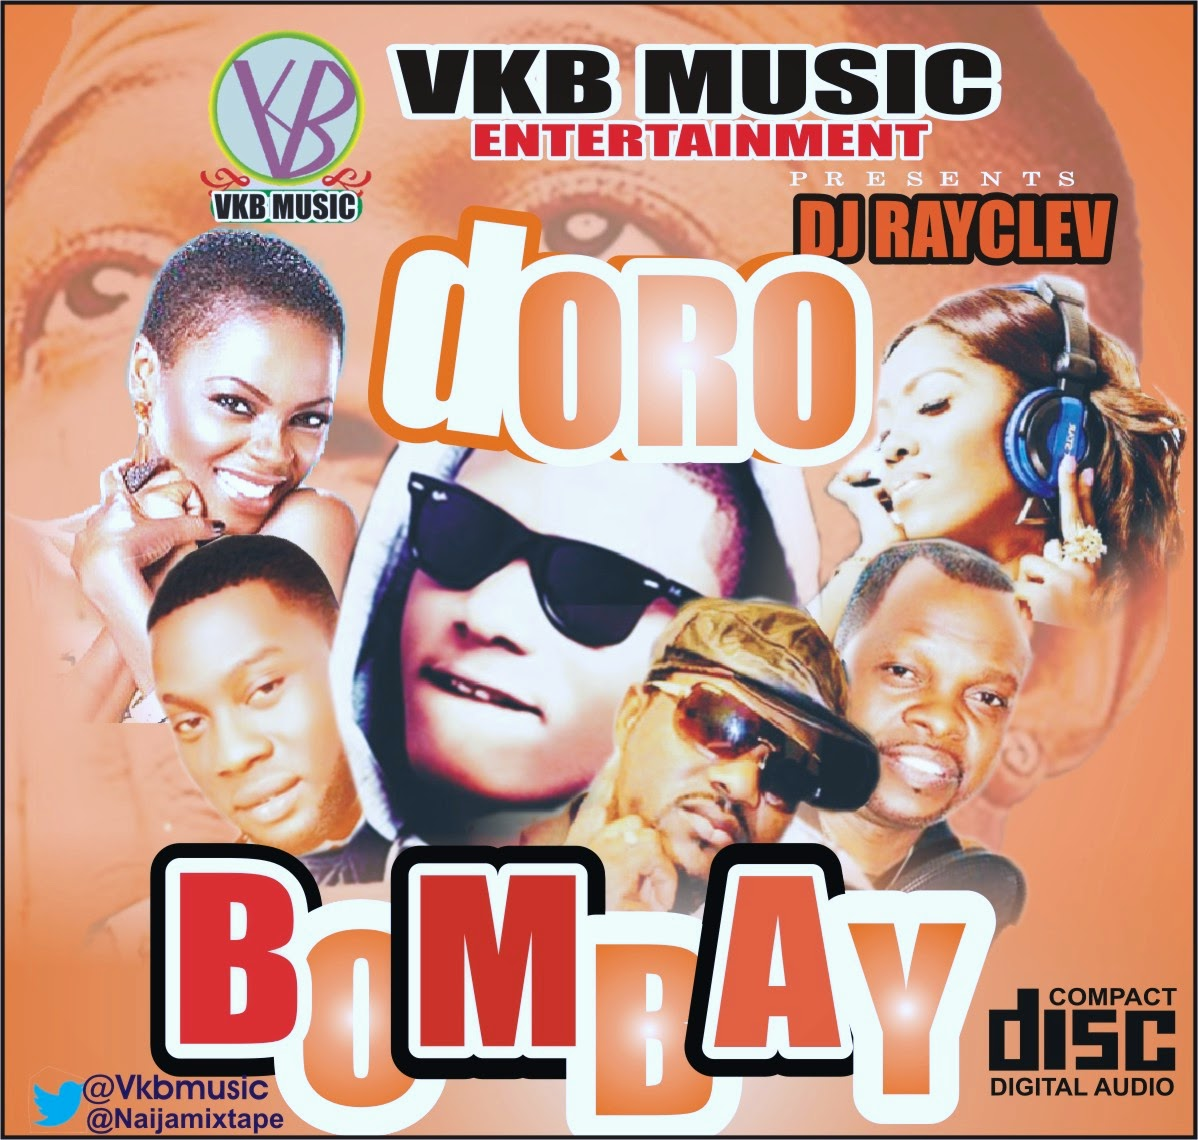 DORO BOMBAY MIX WITH WIZKID (HOST: VKB MUSIC)